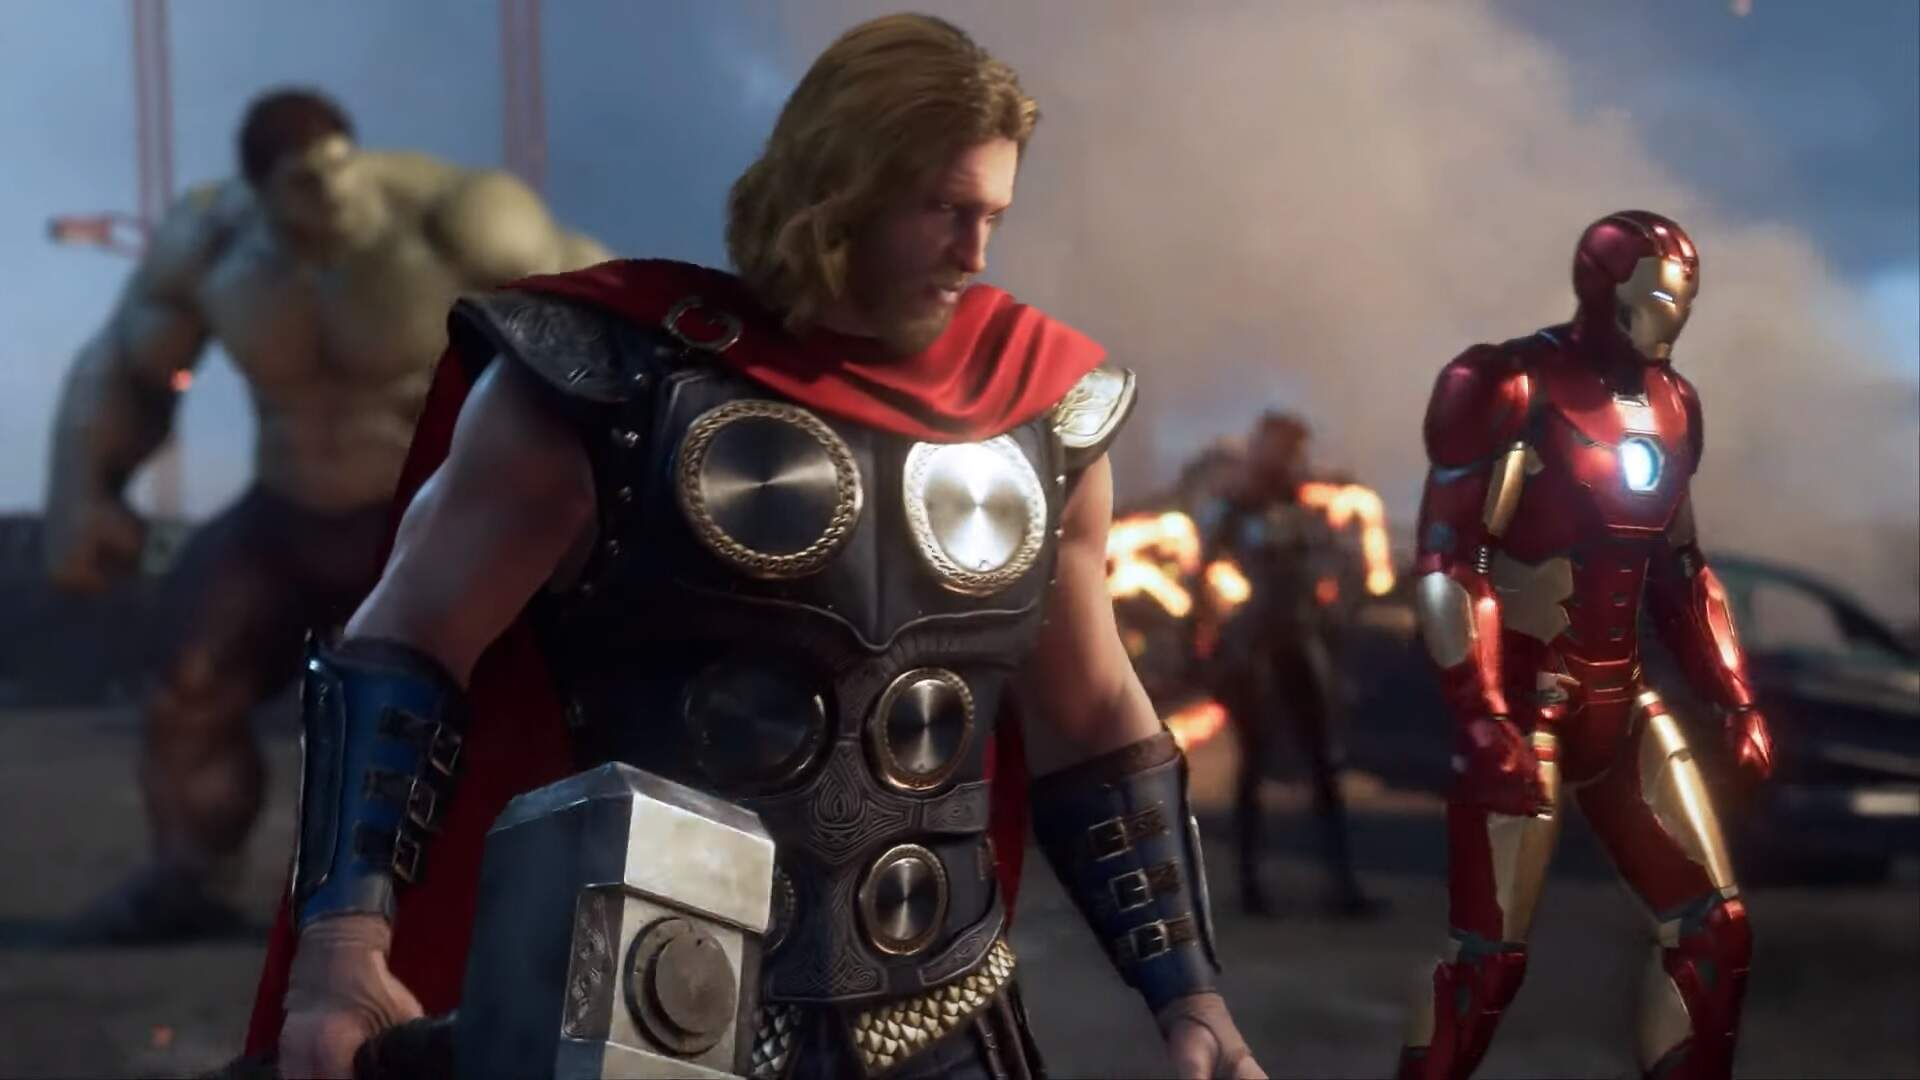 Marvel's Avengers Gameplay, Release Date, A-Day - Everything We Know